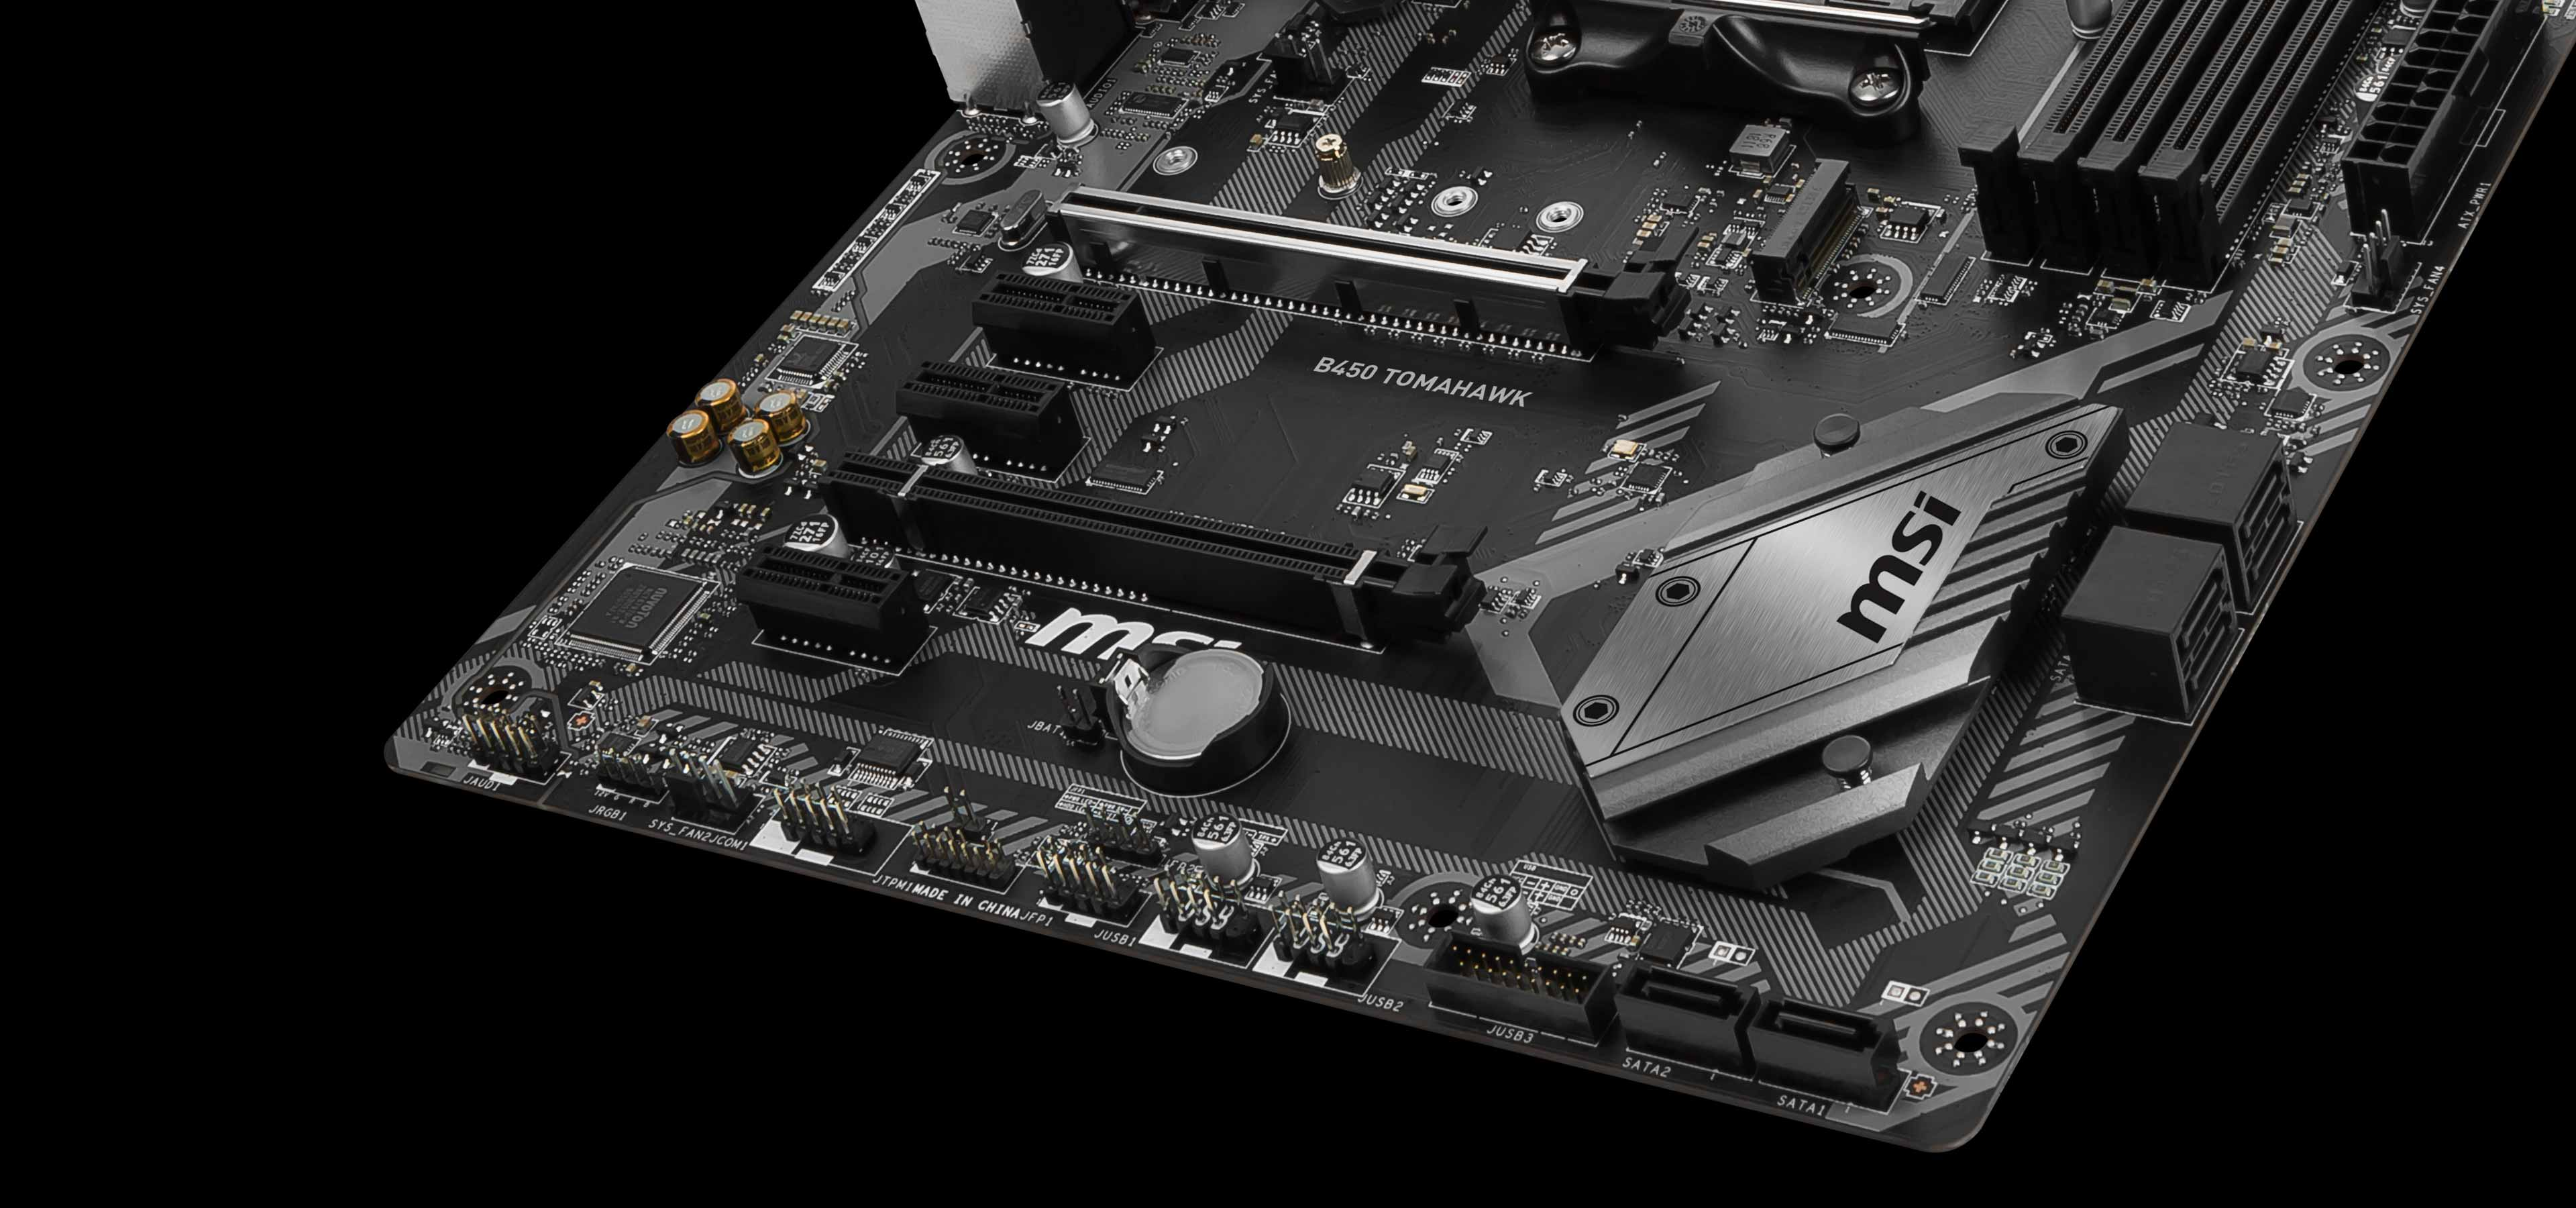 B450 TOMAHAWK | Motherboard - The world leader in motherboard design